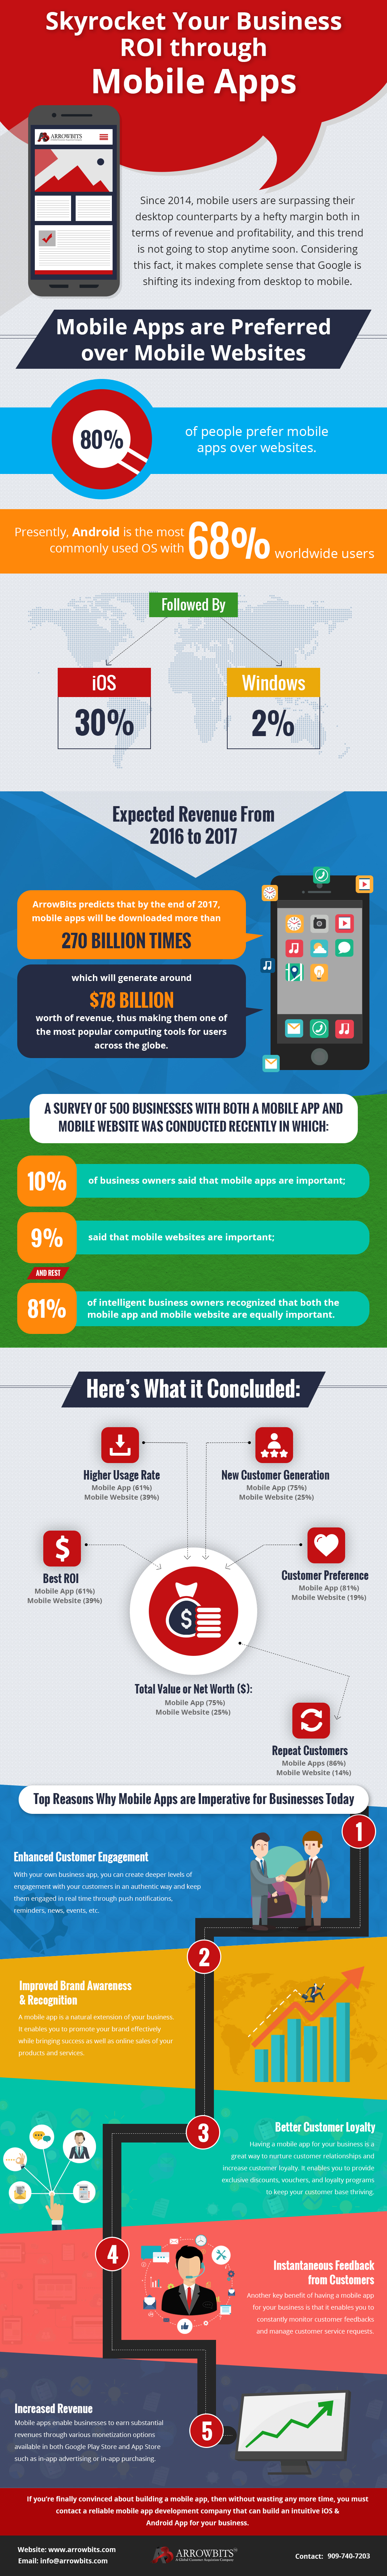 infographic mobile app development services